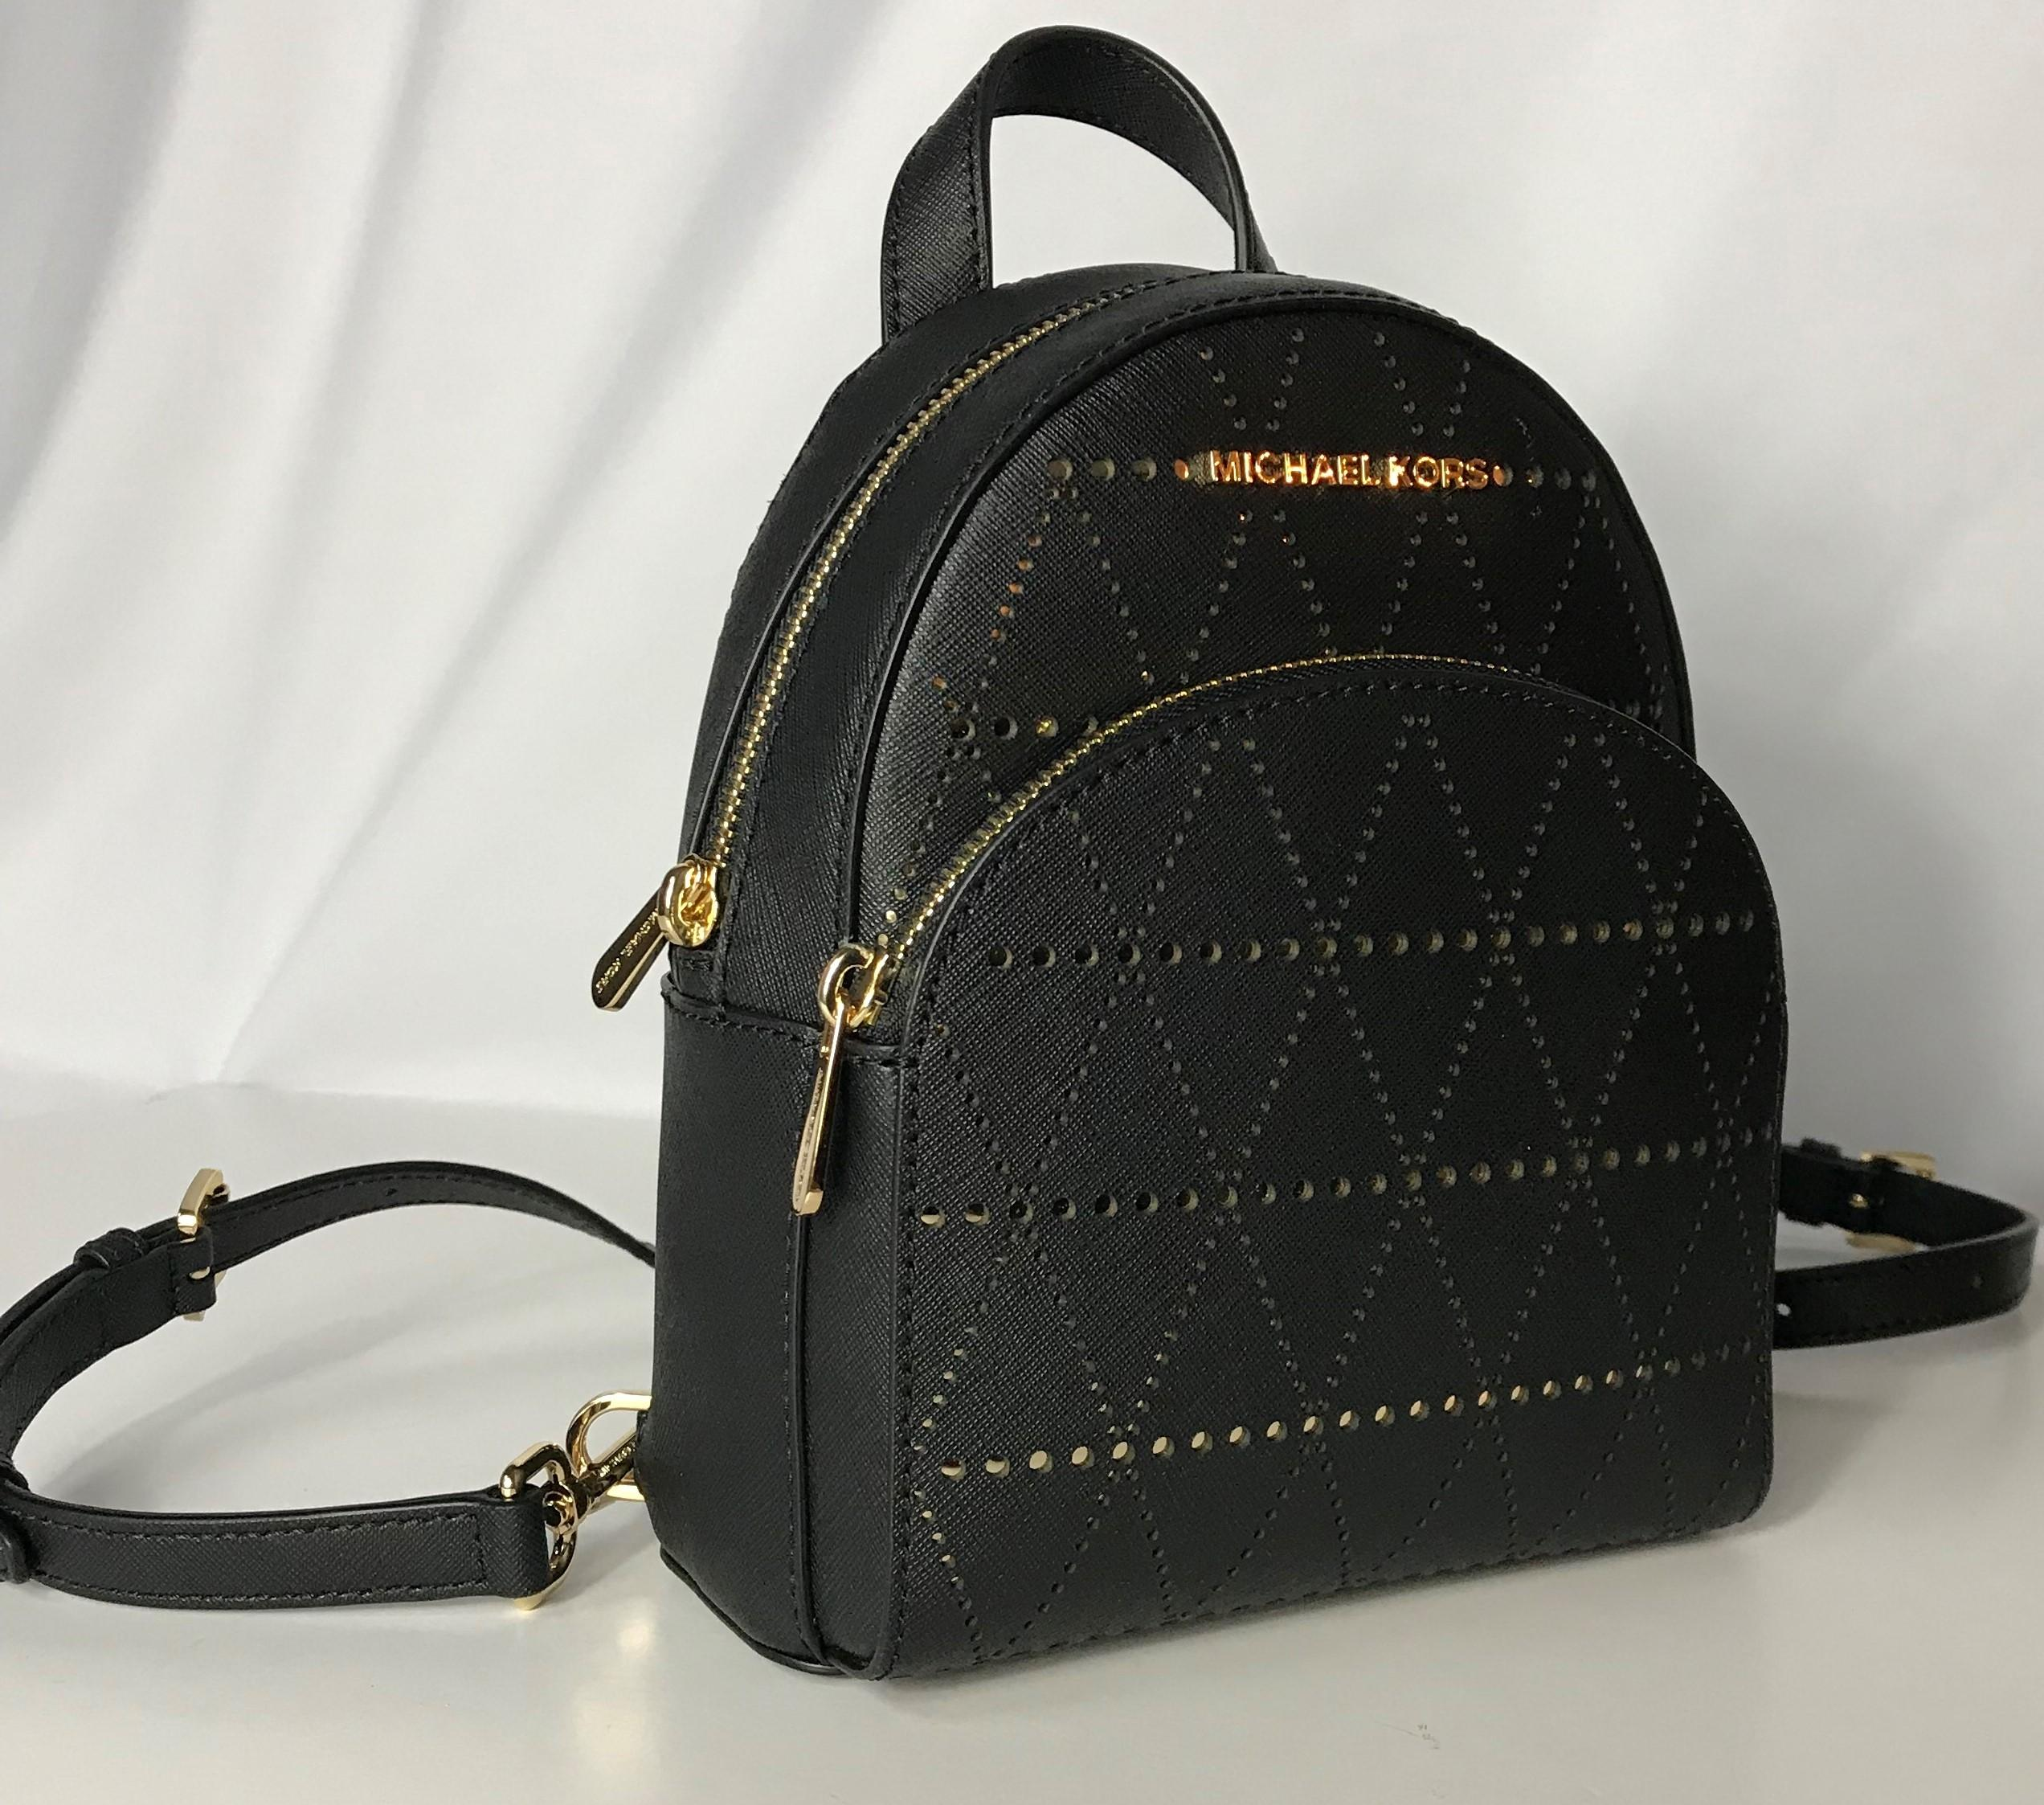 2c115d760806 ... reduced michael kors backpack. 123456789101112 1bd11 e2d01